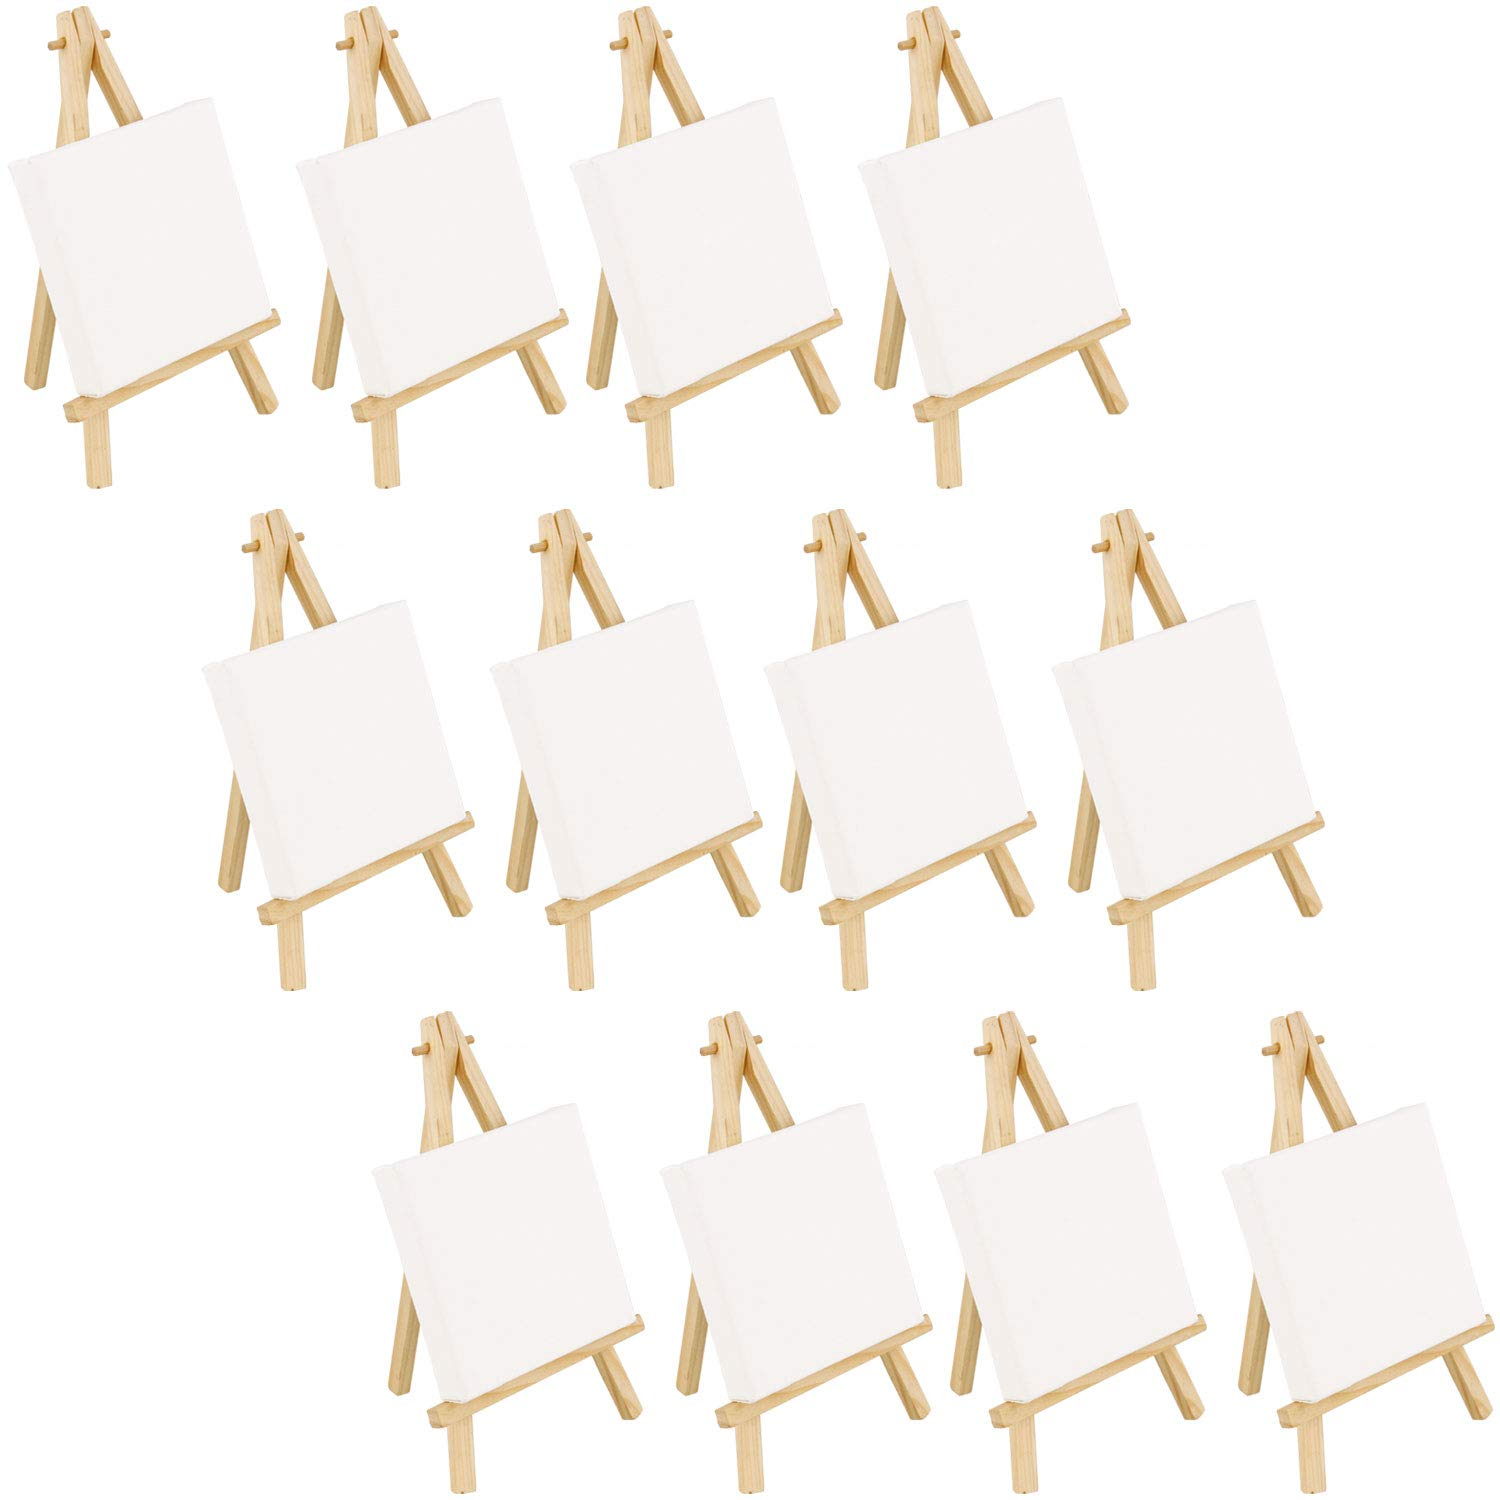 US Art Supply Artists 5''x5'' Mini Canvas & 8'' Mini Natural Easel Set Painting Craft Drawing - Set Contains: 12 Mini Canvases & 12 Mini Easels